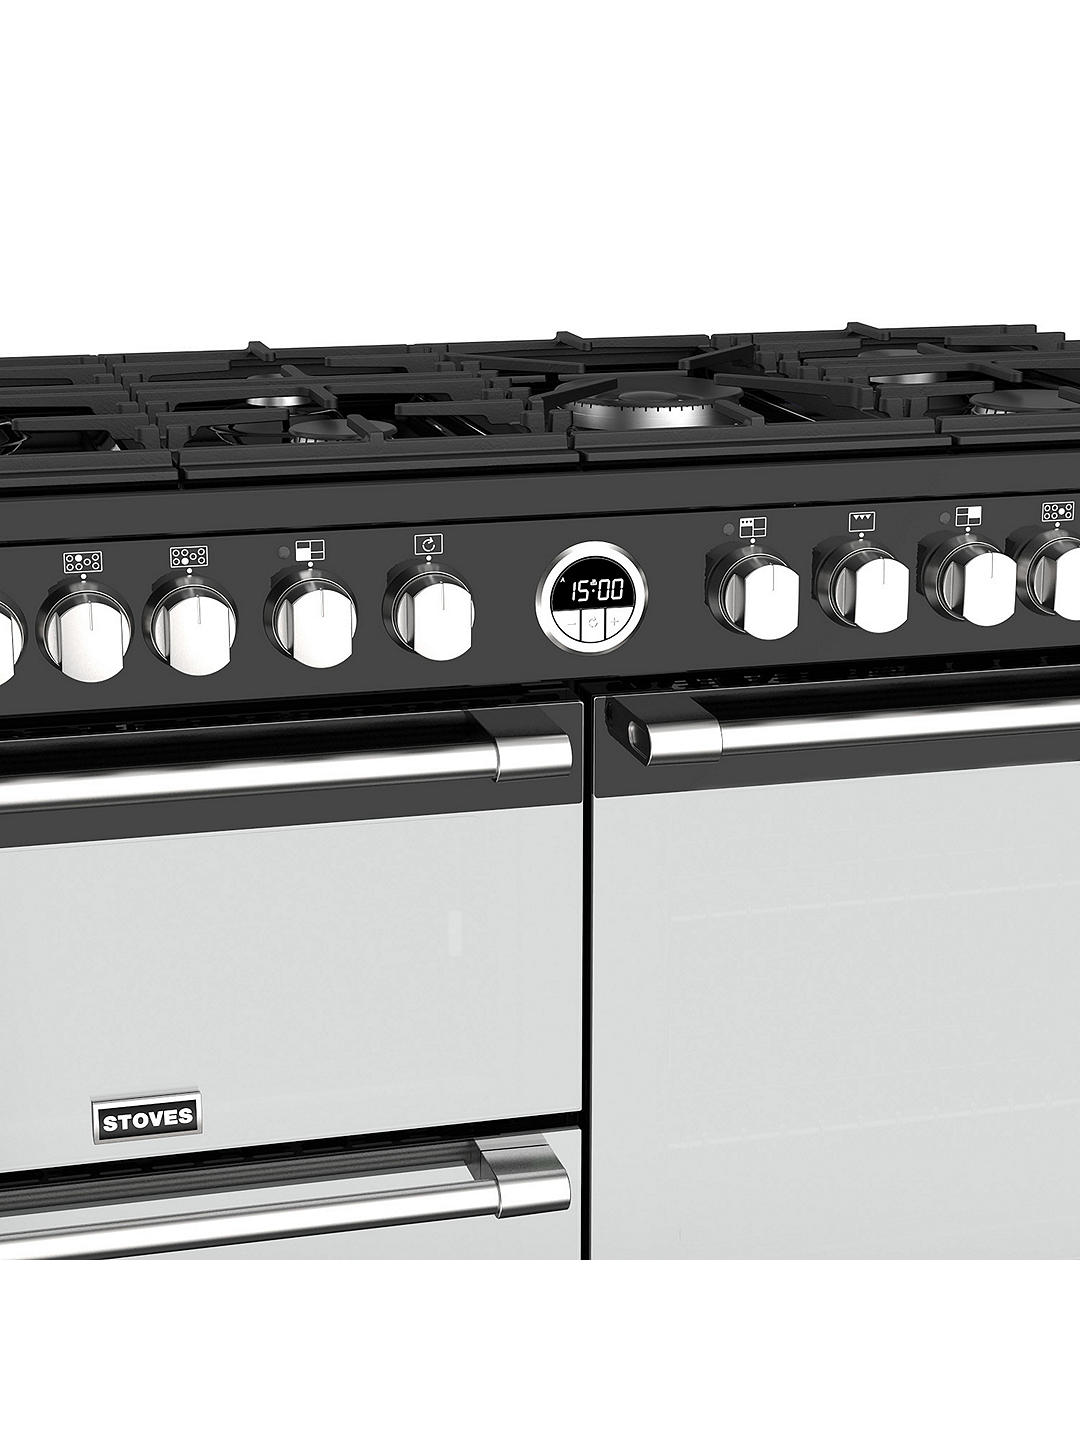 Buy Sterling Deluxe S1100DF Range Cooker, Black Online at johnlewis.com